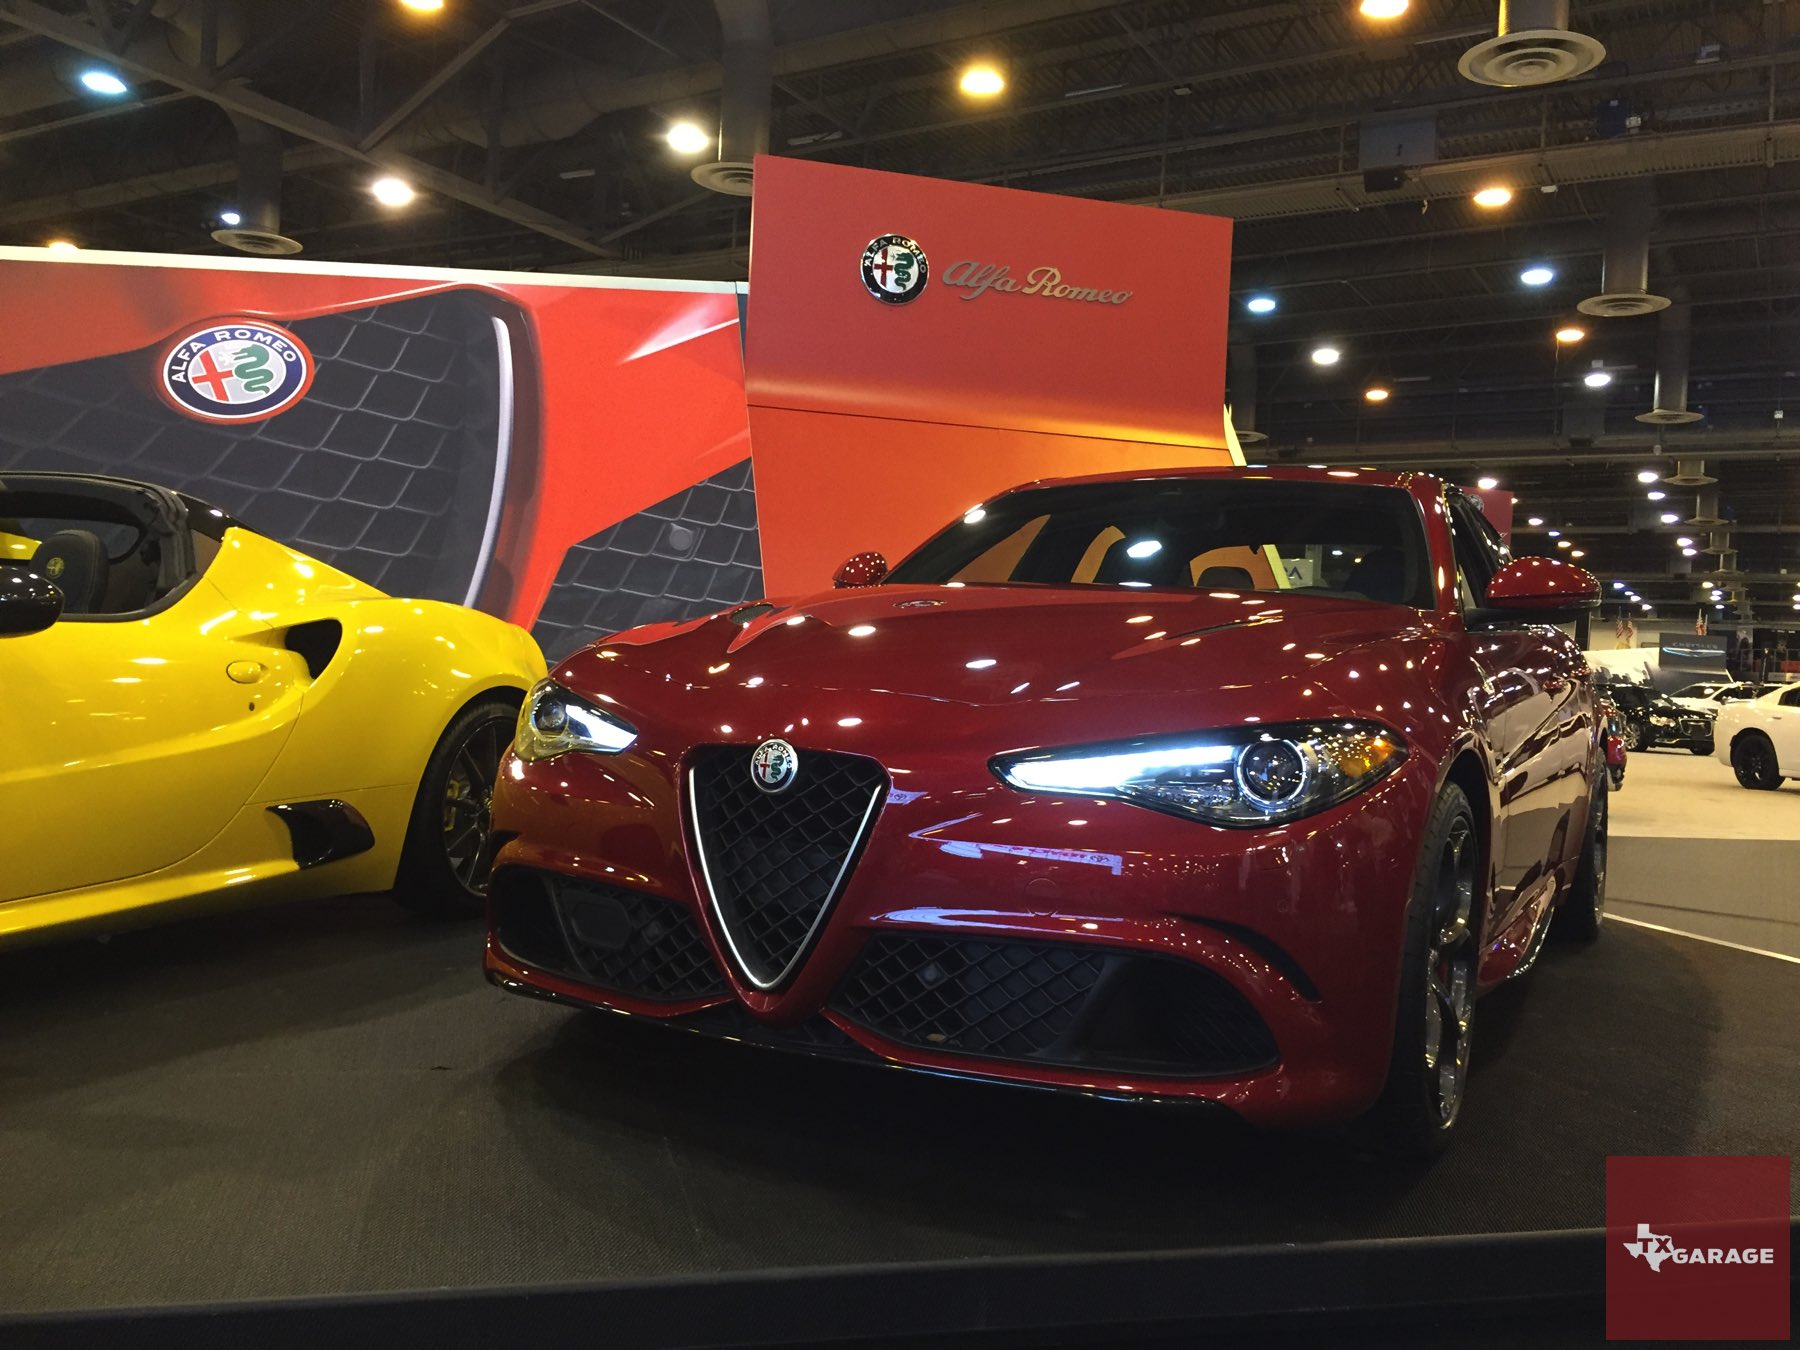 2017 Alfa Romeo Giulia Quadrifoglio - at the Houston Auto Show